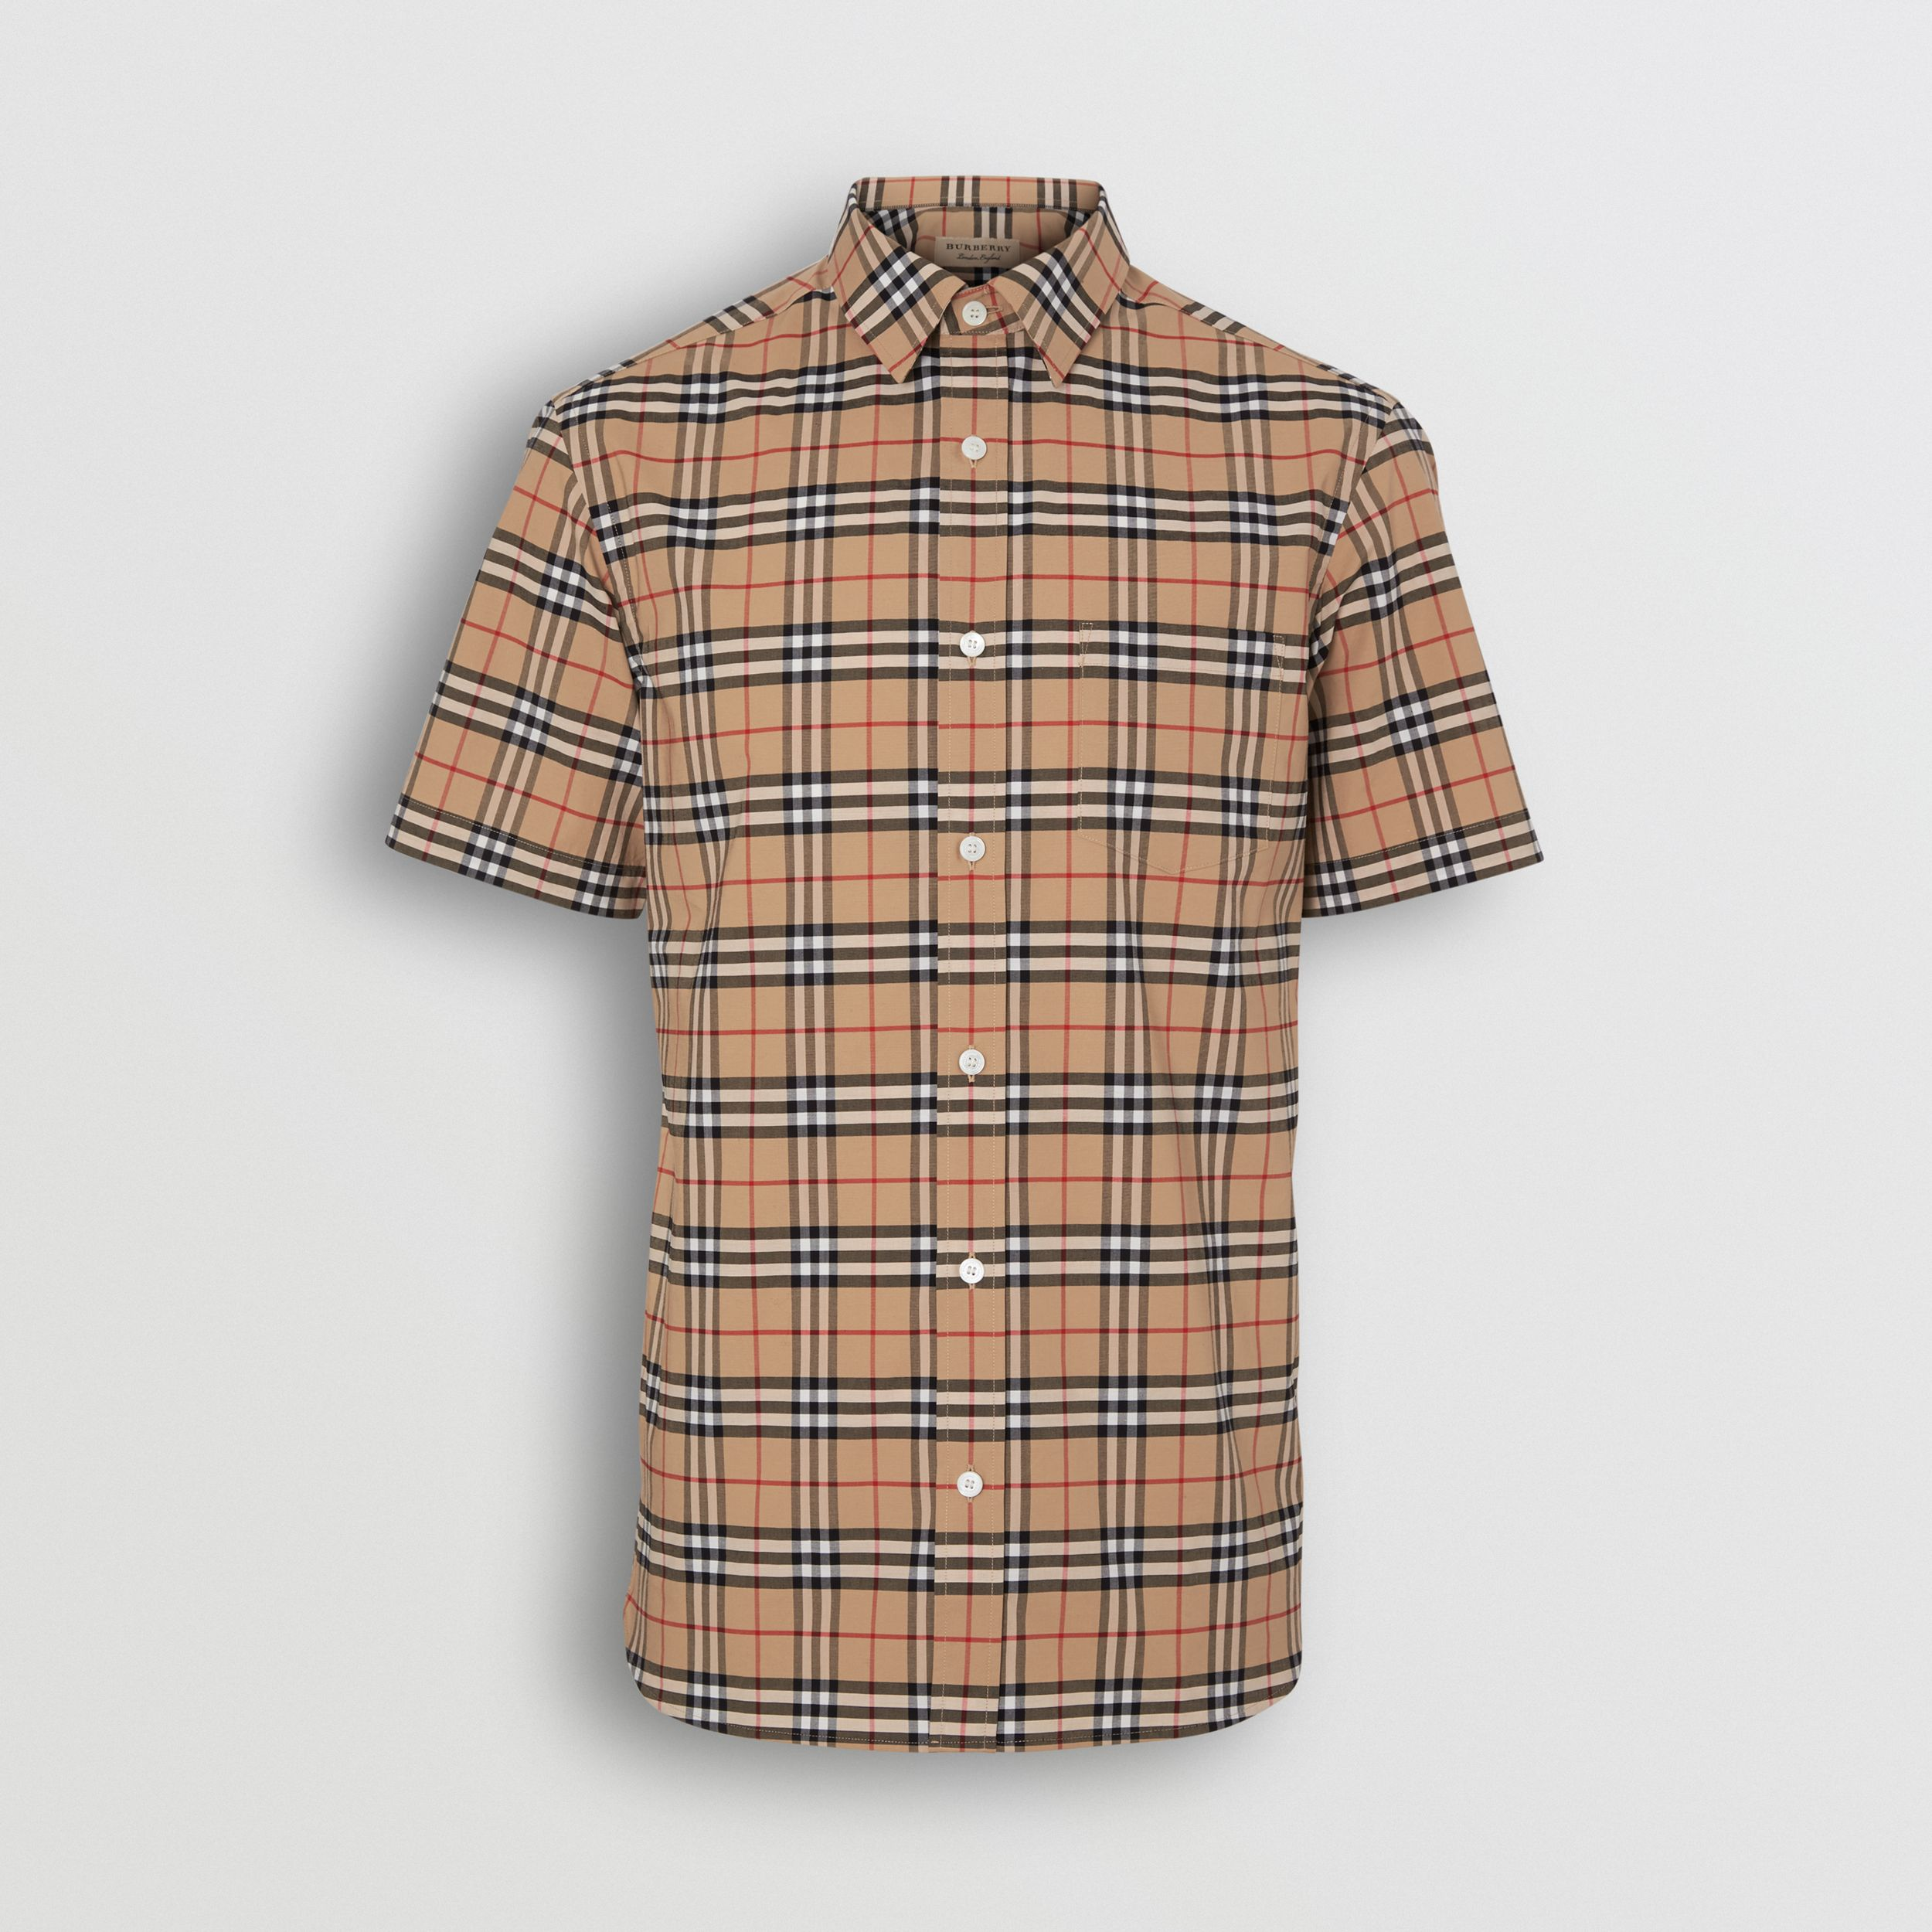 Short-sleeve Check Stretch Cotton Shirt in Camel - Men | Burberry Australia - 4